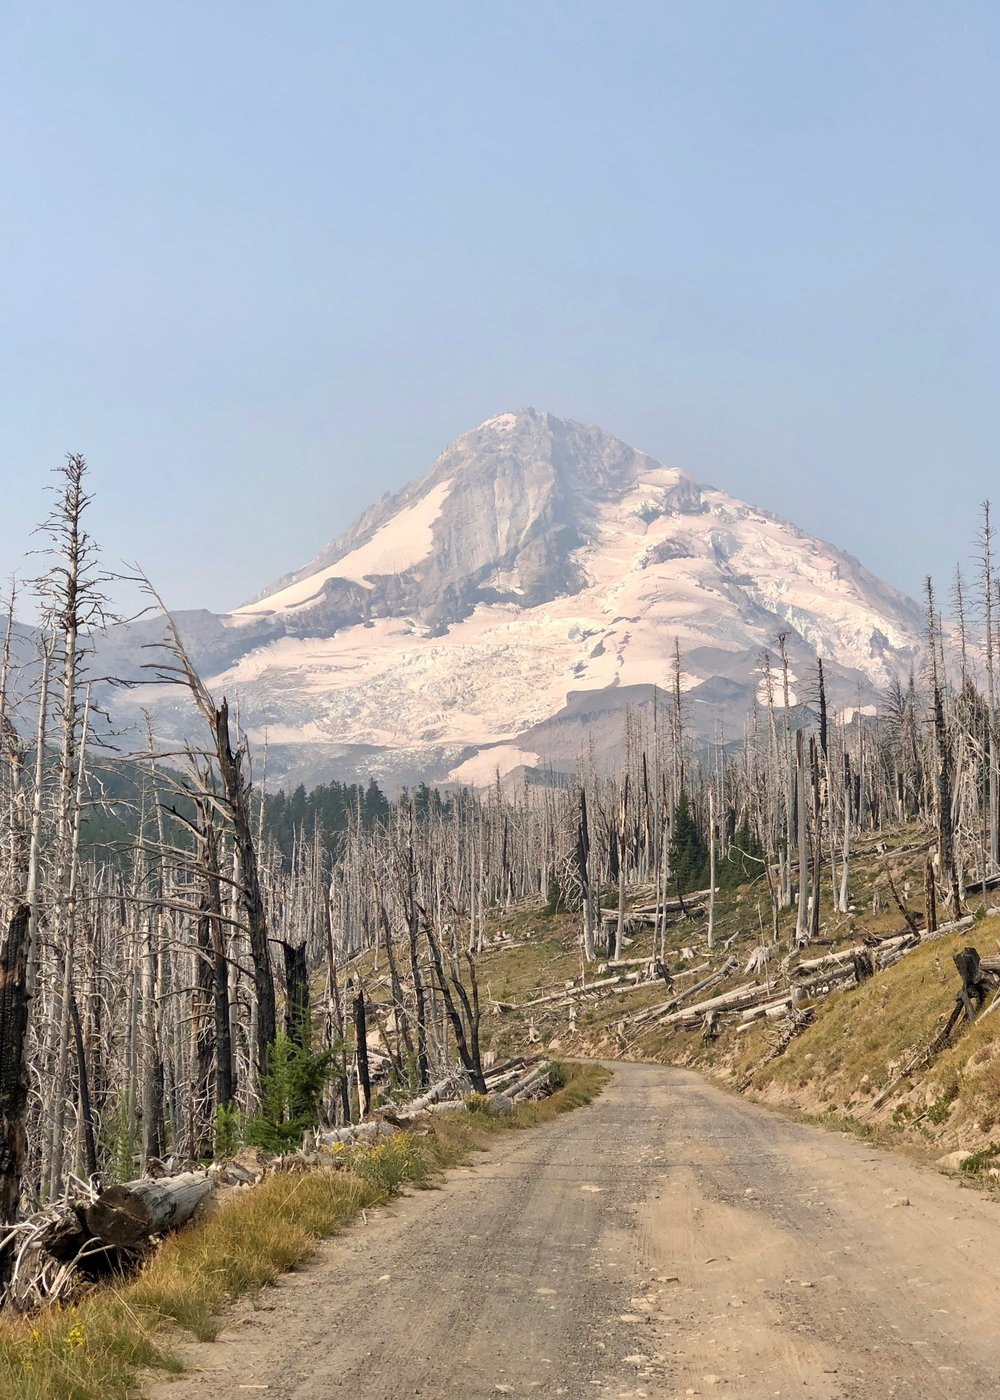 The drive up was through the remains of an old forest fire, but gave us impressive views of Mount Hood and it's glaciers.